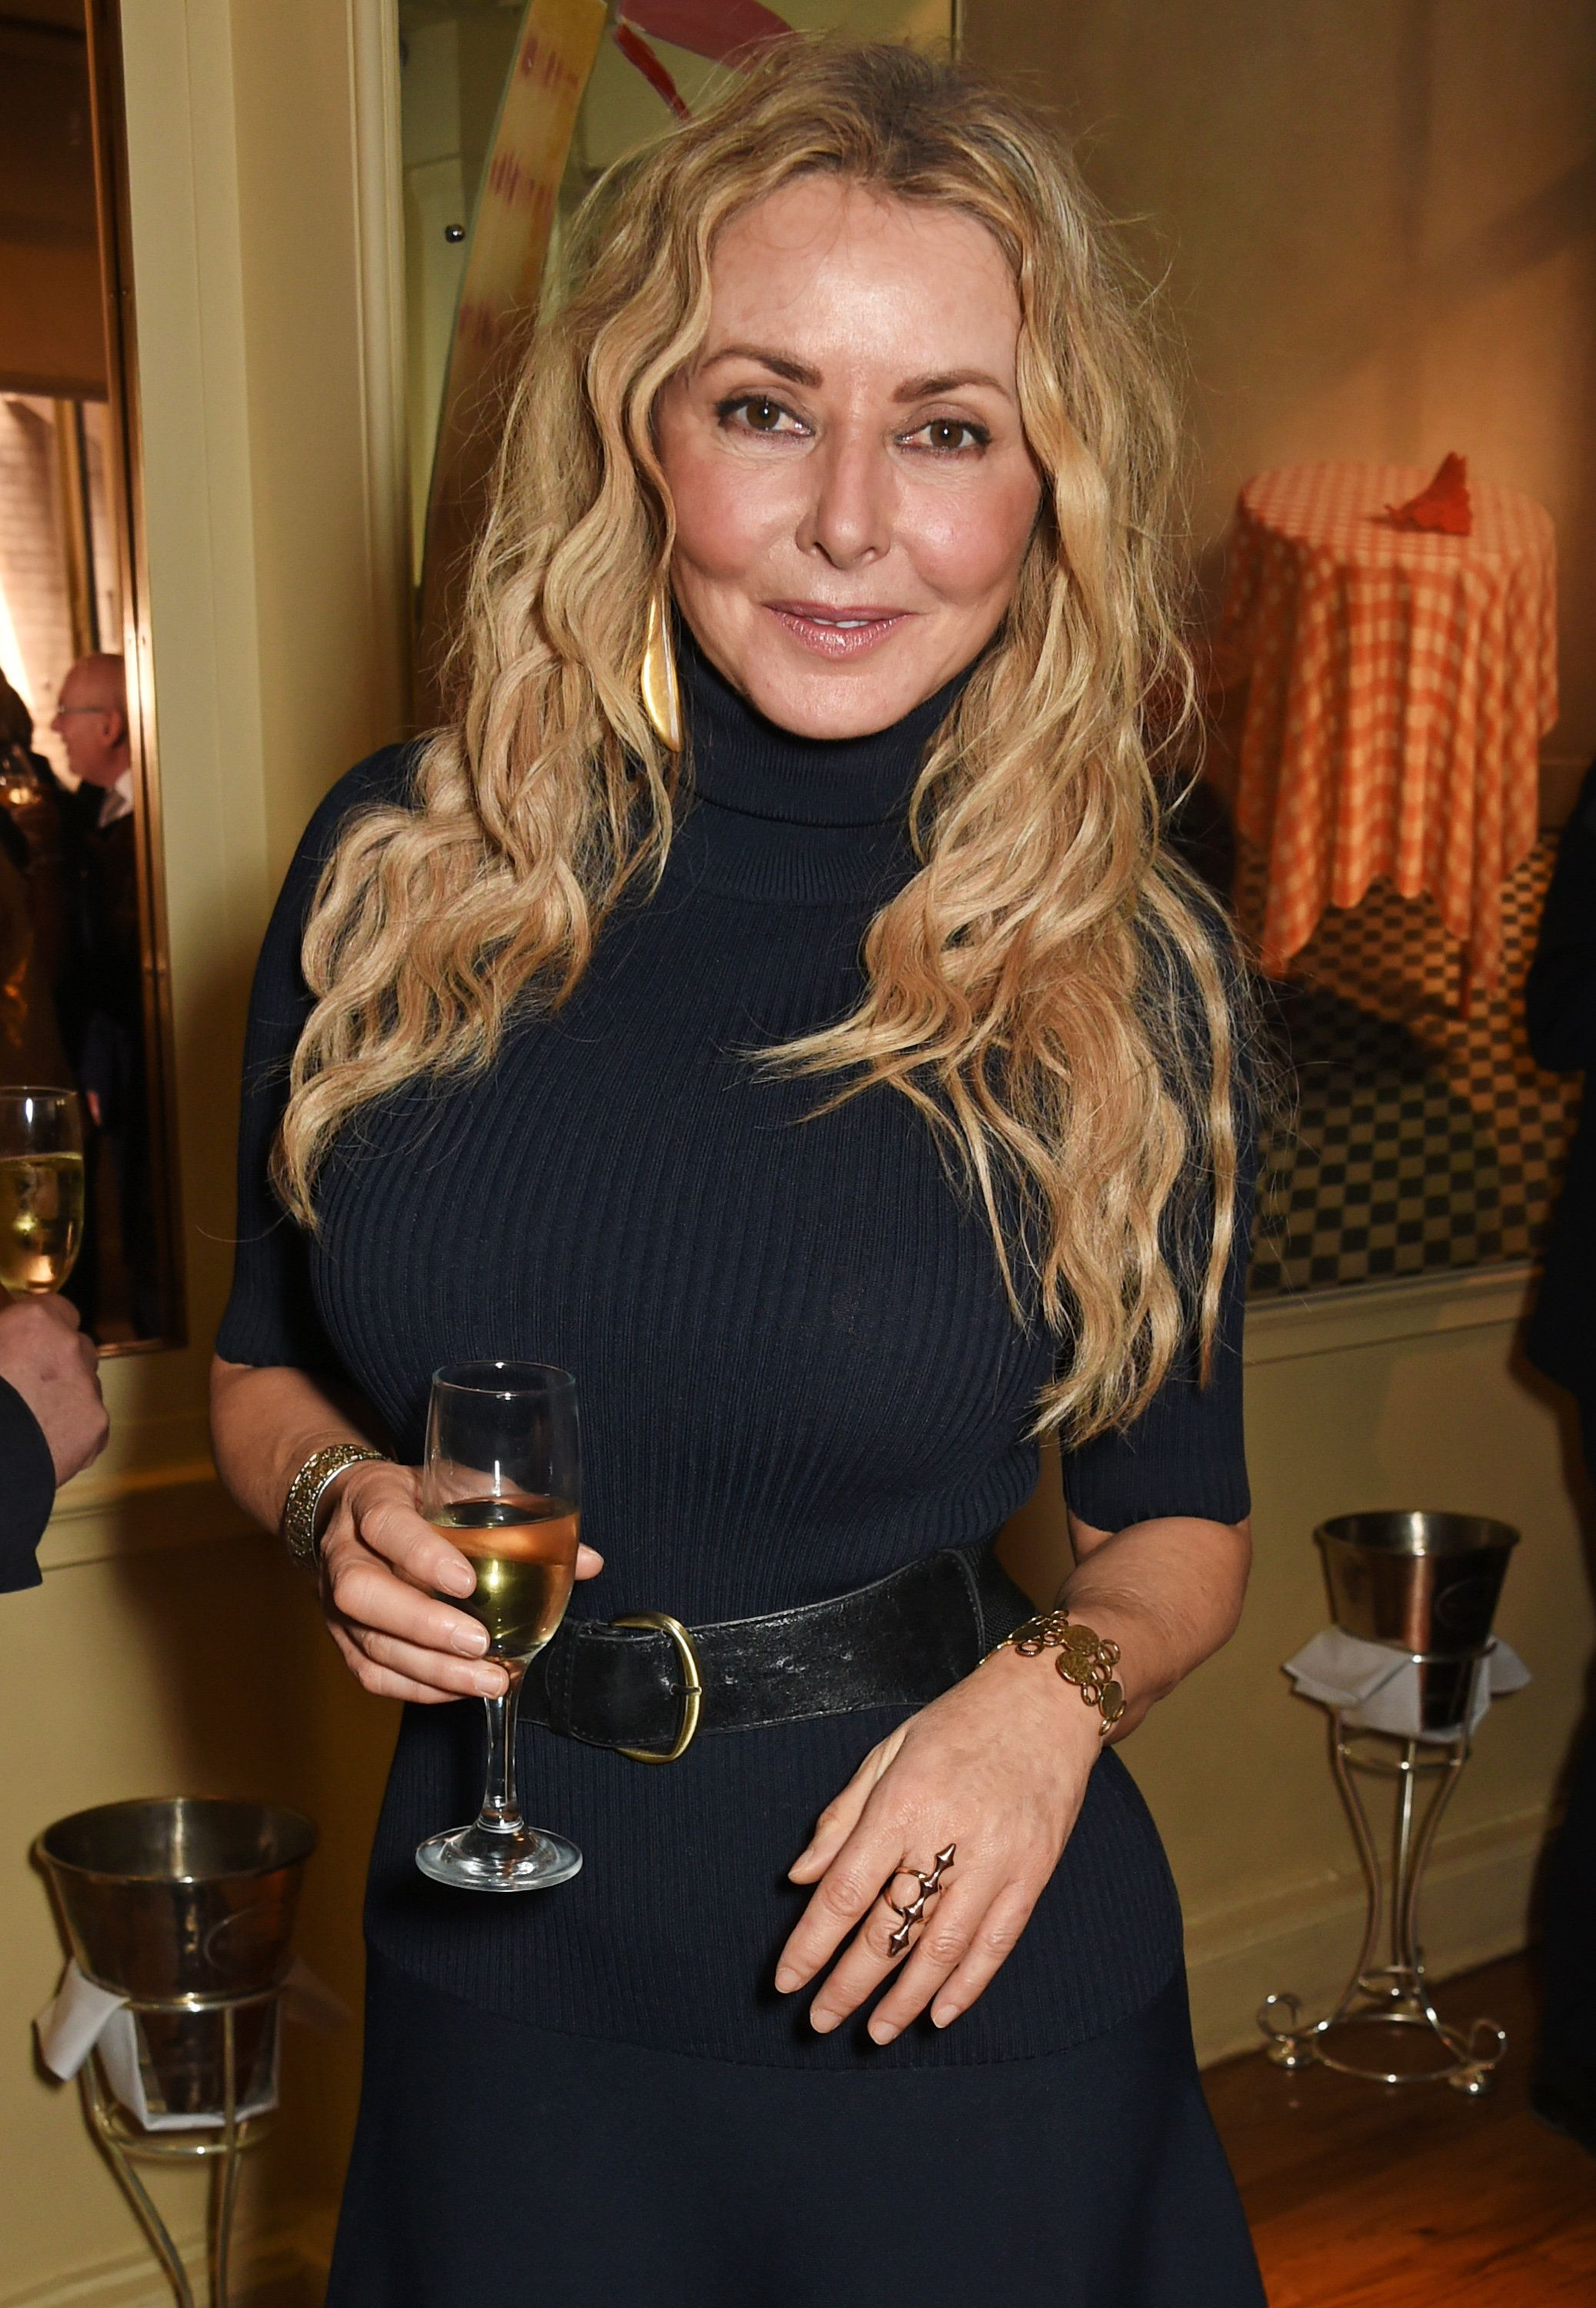 Carol Vorderman has called off her plans to fly solo across the